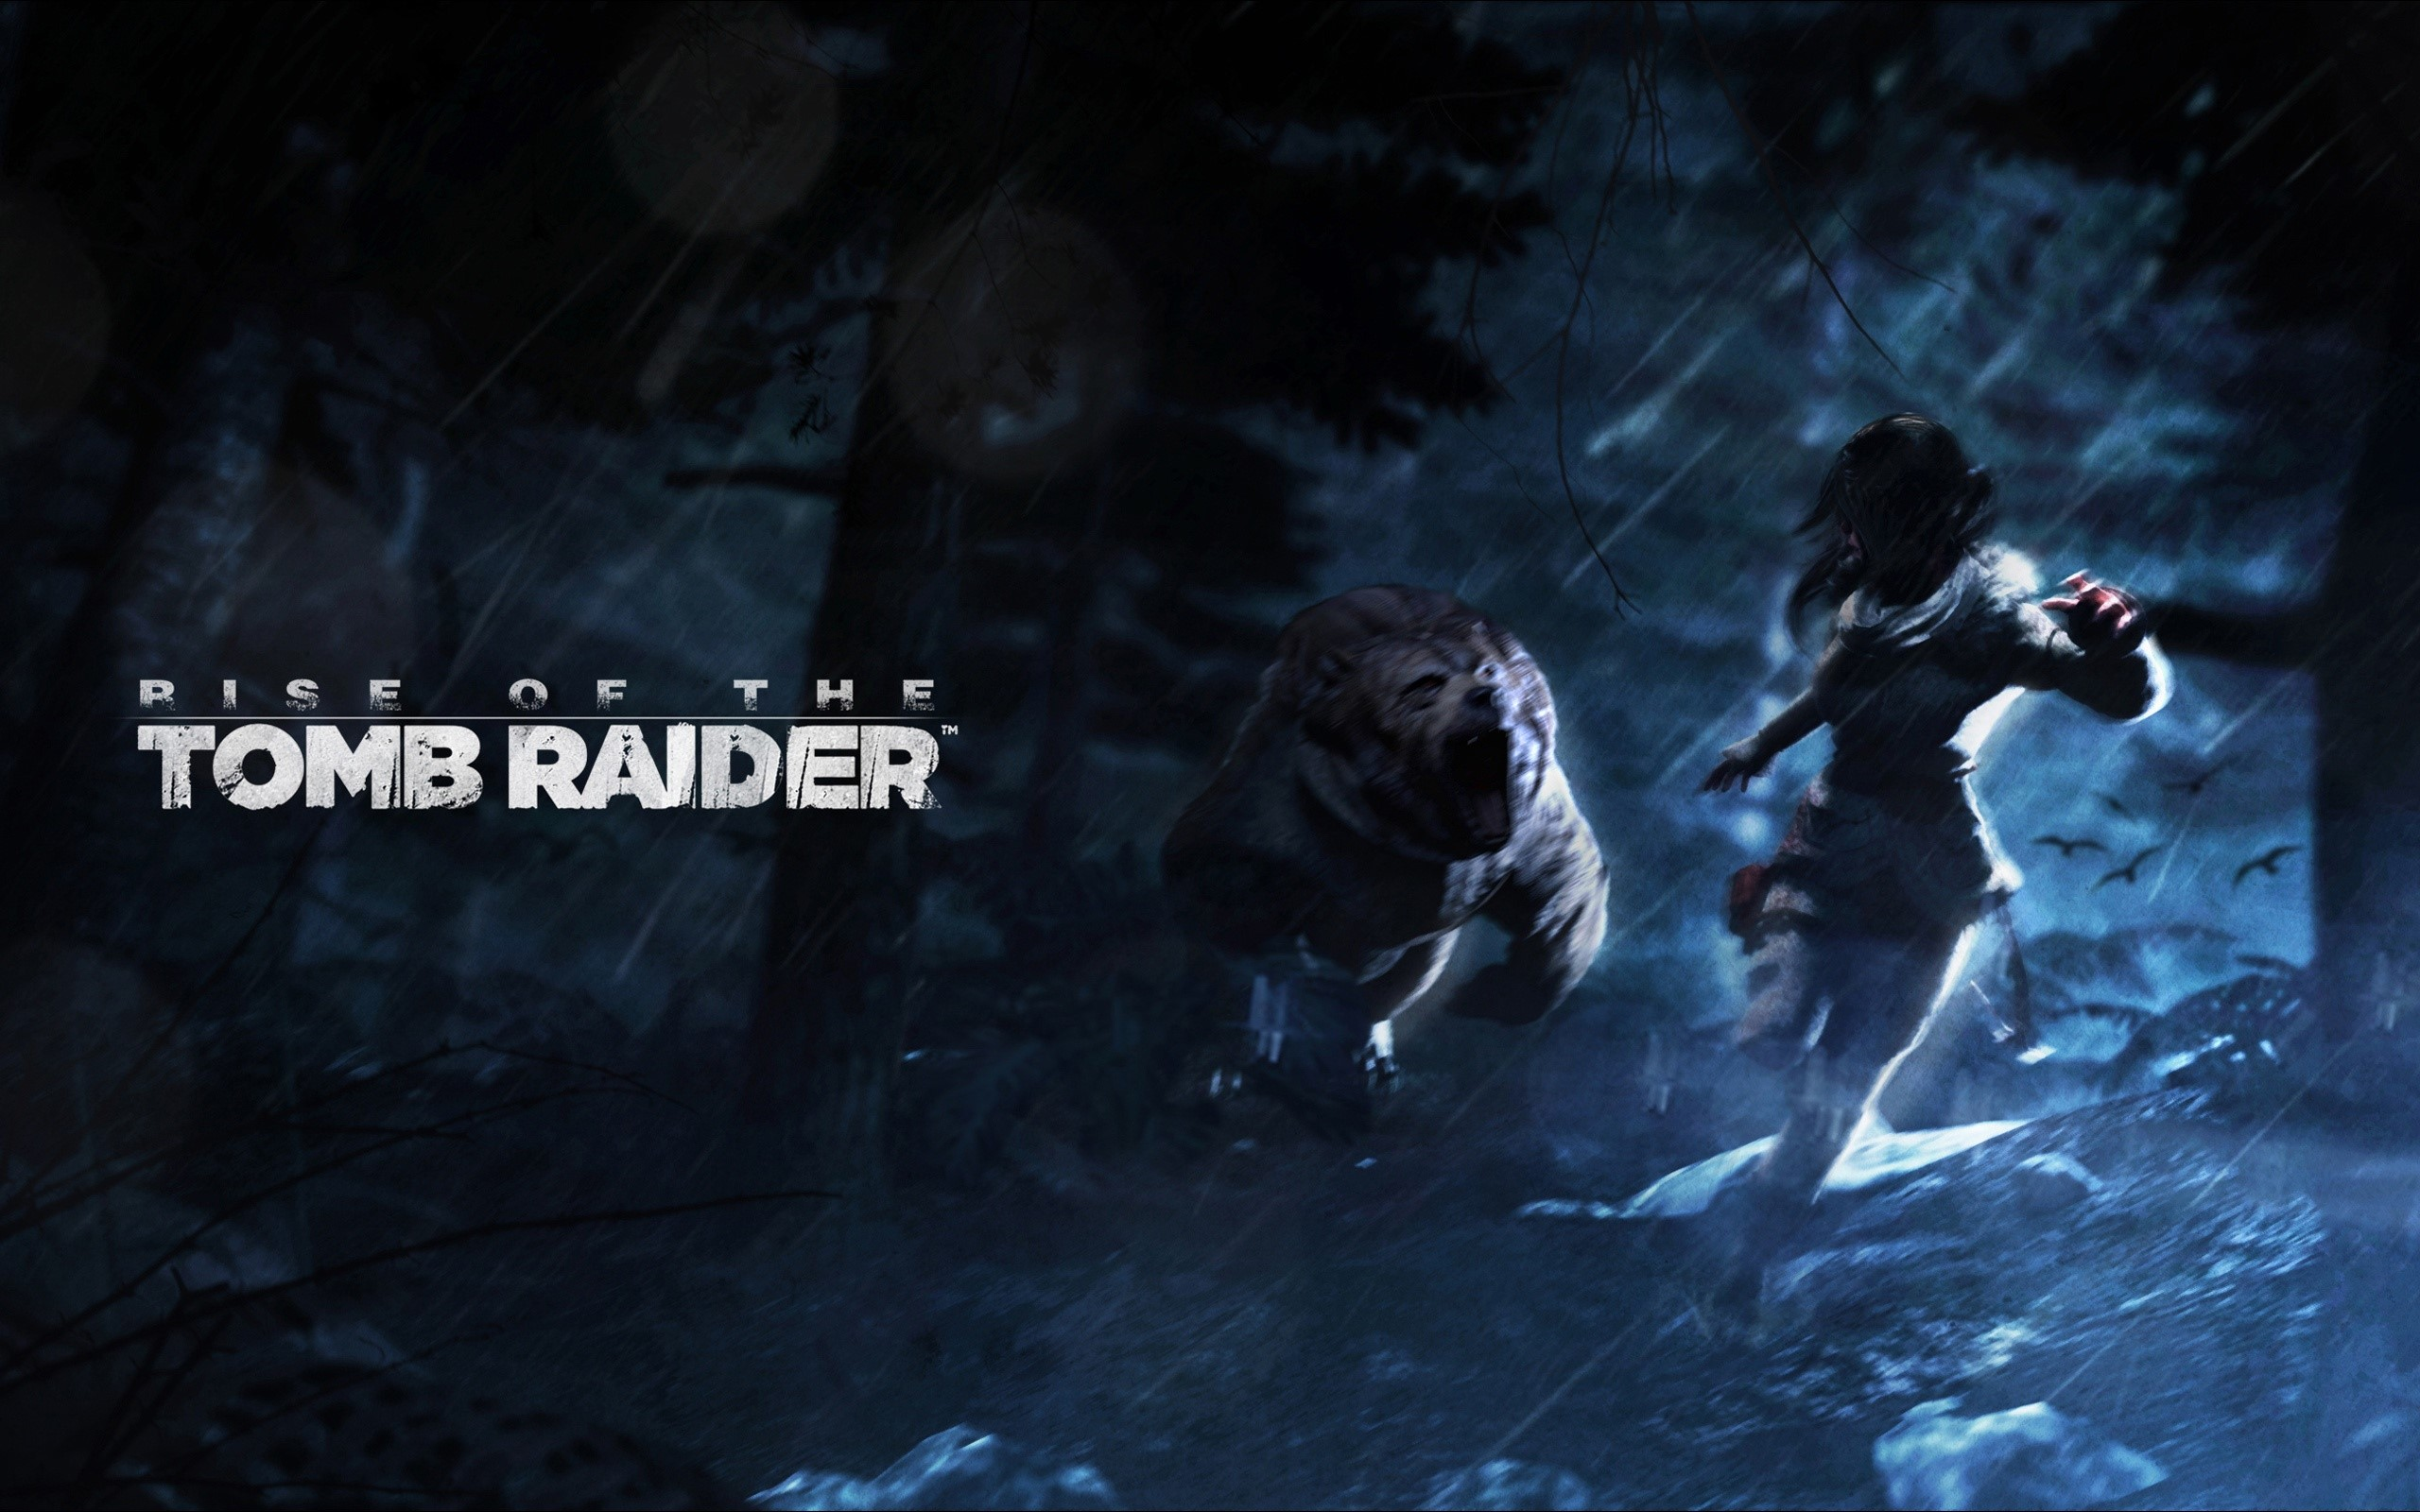 Wallpaper Fanart by Rise of Tomb Raider